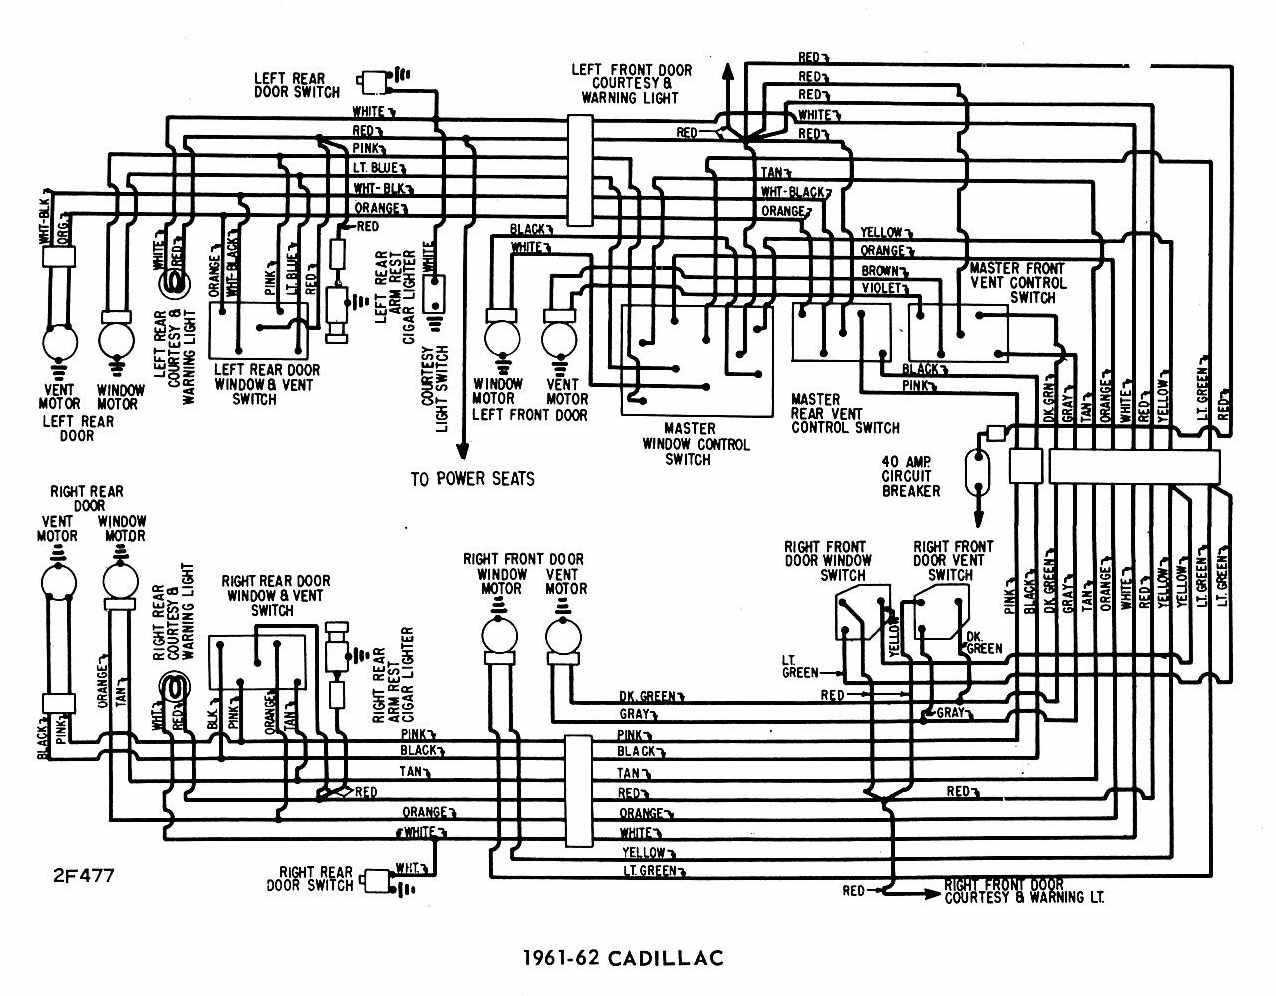 2001 Camaro Monsoon Radio Wiring Diagram also Pontiac Grand Am 2001 2004 Fuse Box Diagram in addition 30gwr 95 Cadillac Seville Dash Lights Blower Motor Stay furthermore Mazda Protege Daytime Running Light Drl Wiring Diagram furthermore Cadillac Escalade Mk1 First Generation 1998 2000 Fuse Box Diagram. on 2000 cadillac deville radio wiring diagram